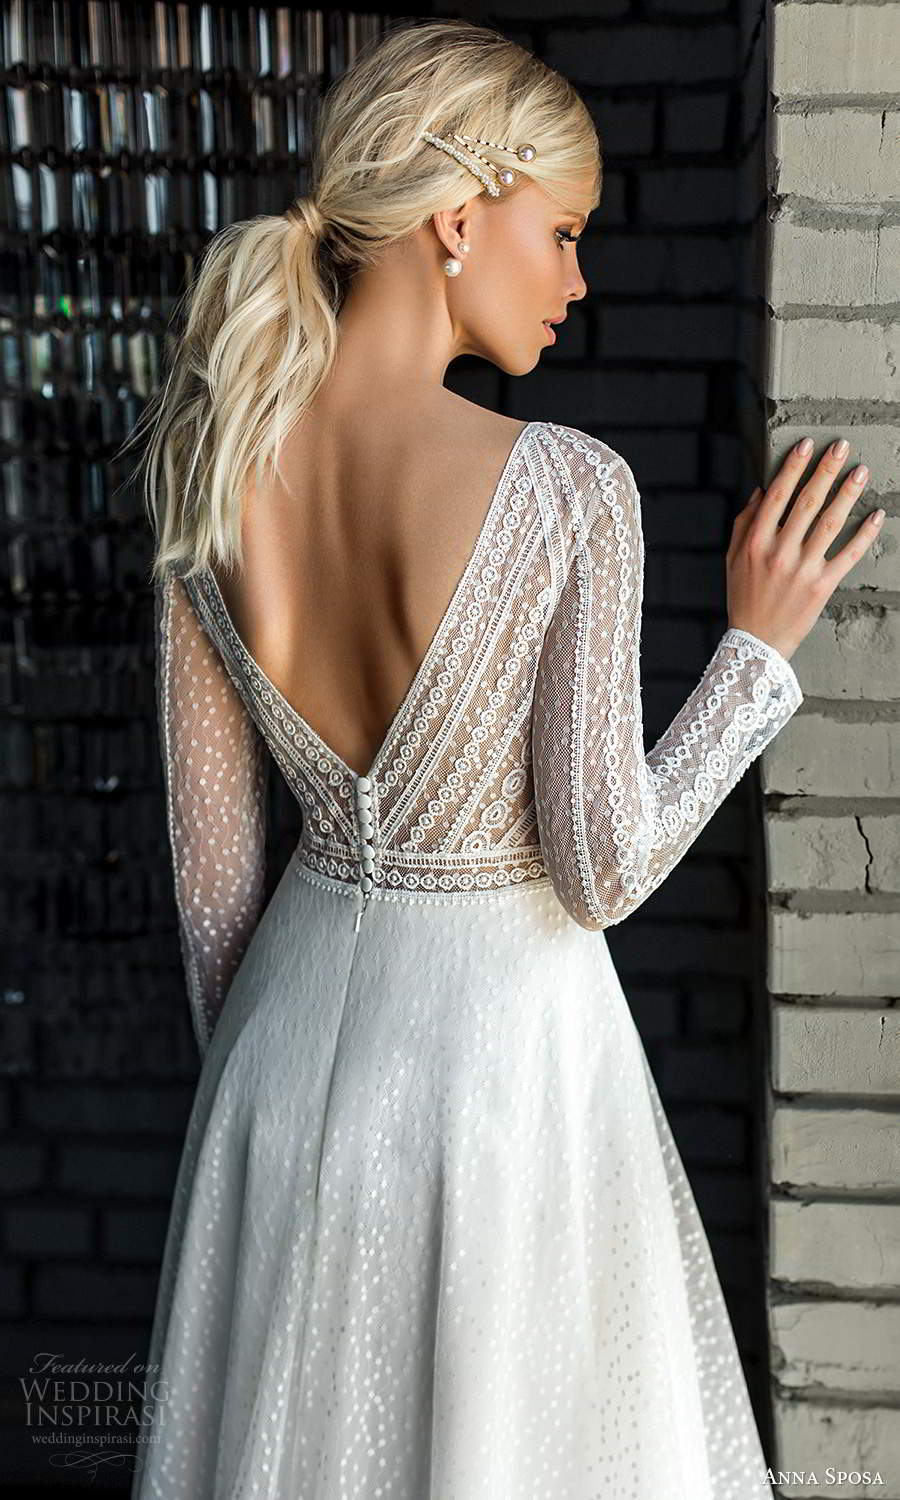 anna sposa 2021 boho bridal sheer long sleeves bateau neckline embellished bodice a line ball gown wedding dress v back (17) zbv